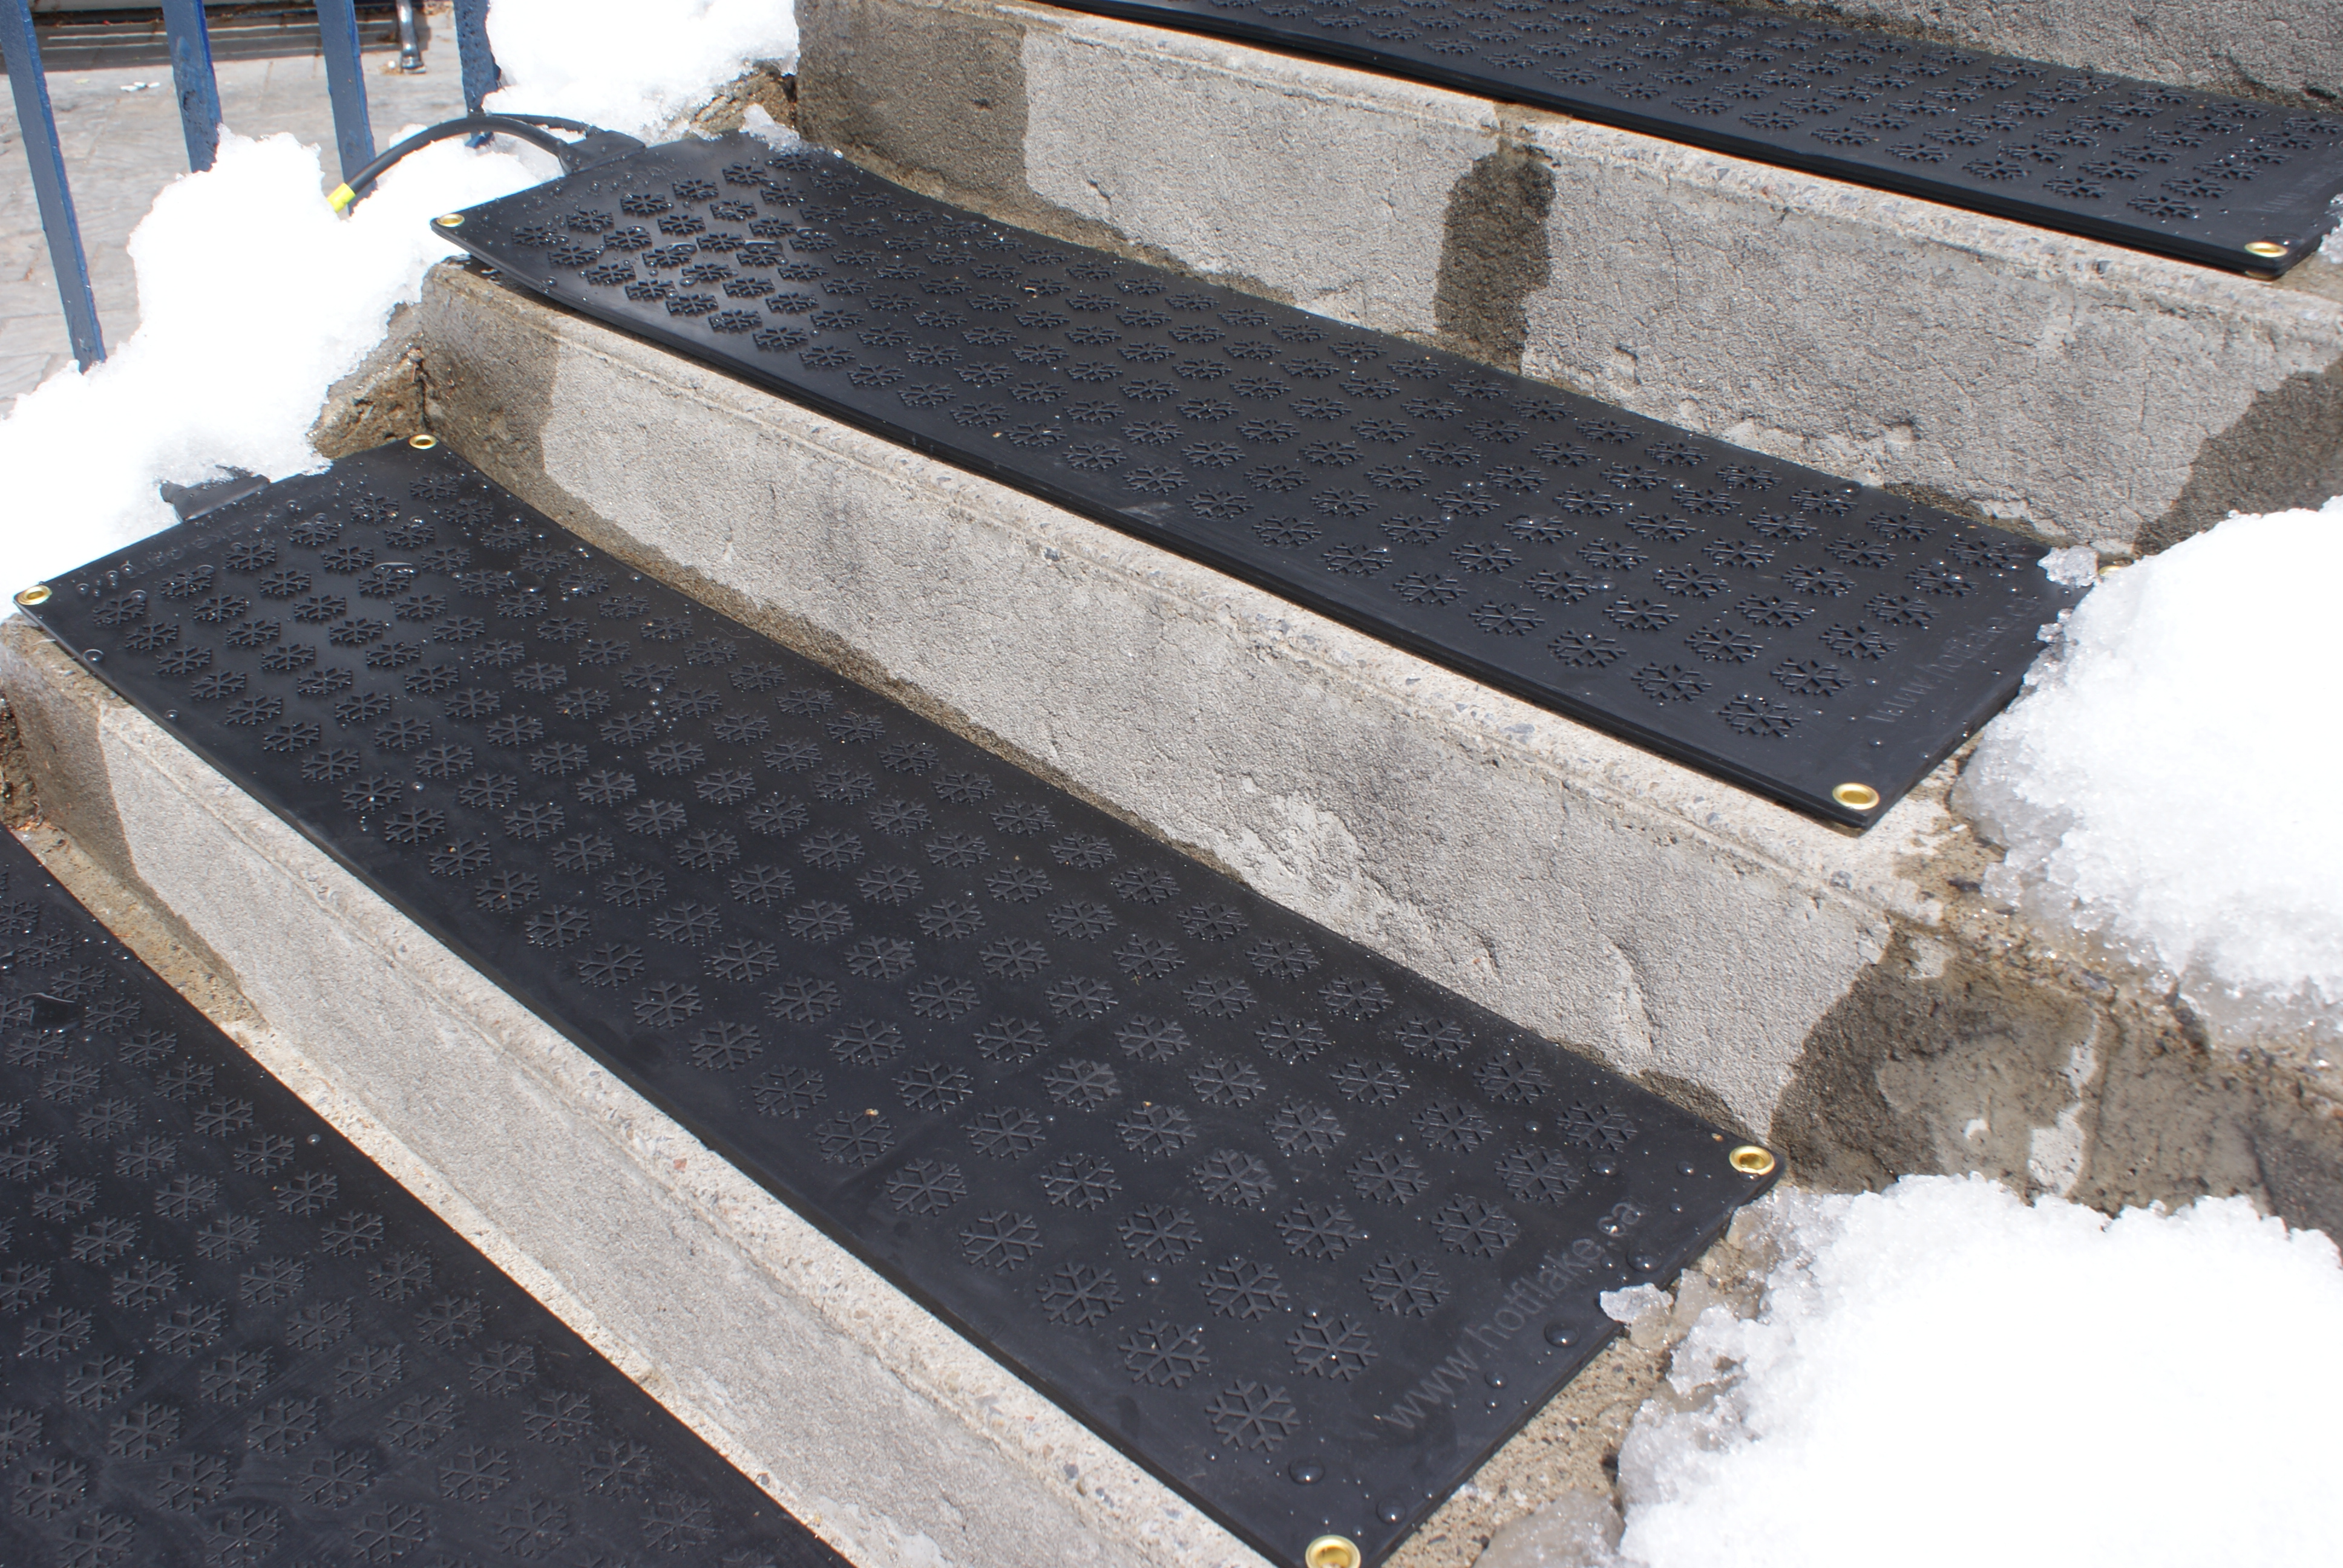 Recommended Non Slip Stair Treads For Stair Care Step Ideas: Safety Stair  Using Non Slip